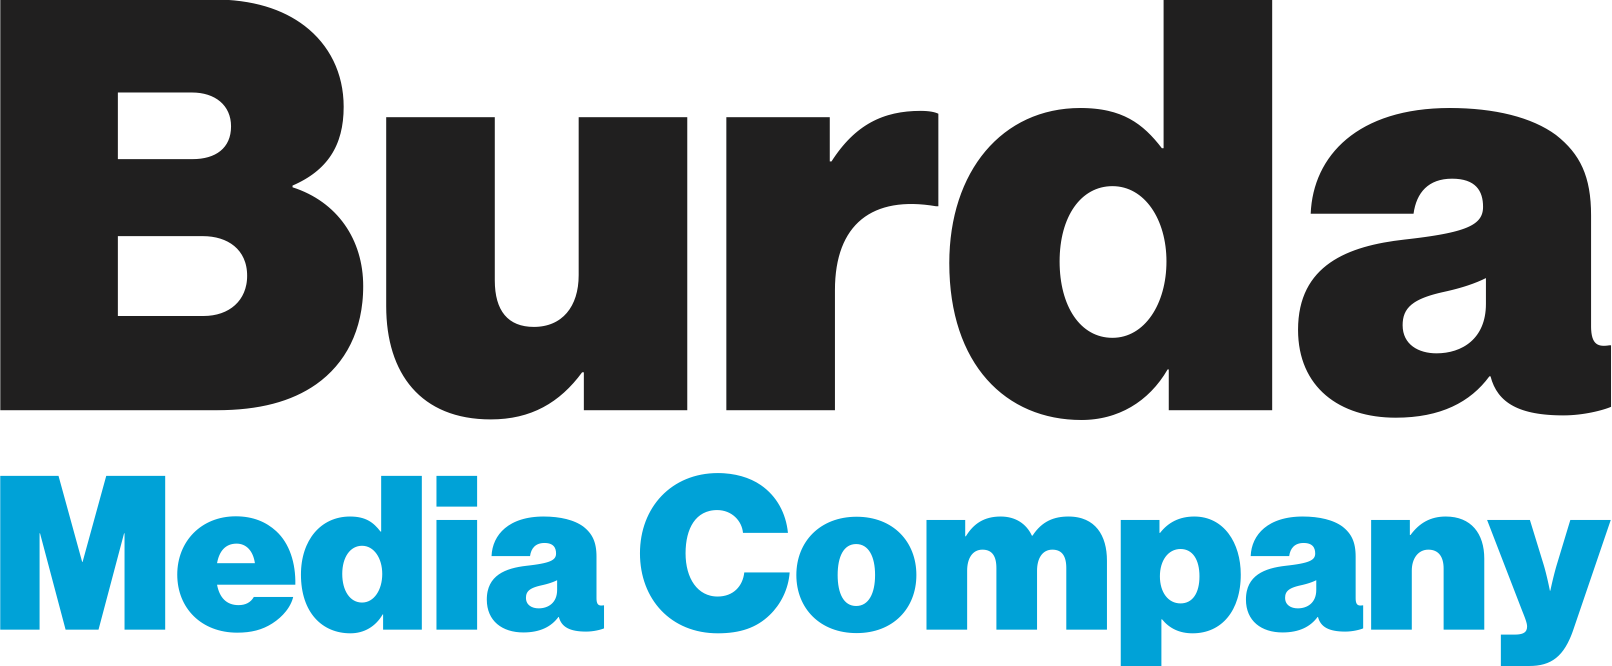 Burda_Media_logo.png